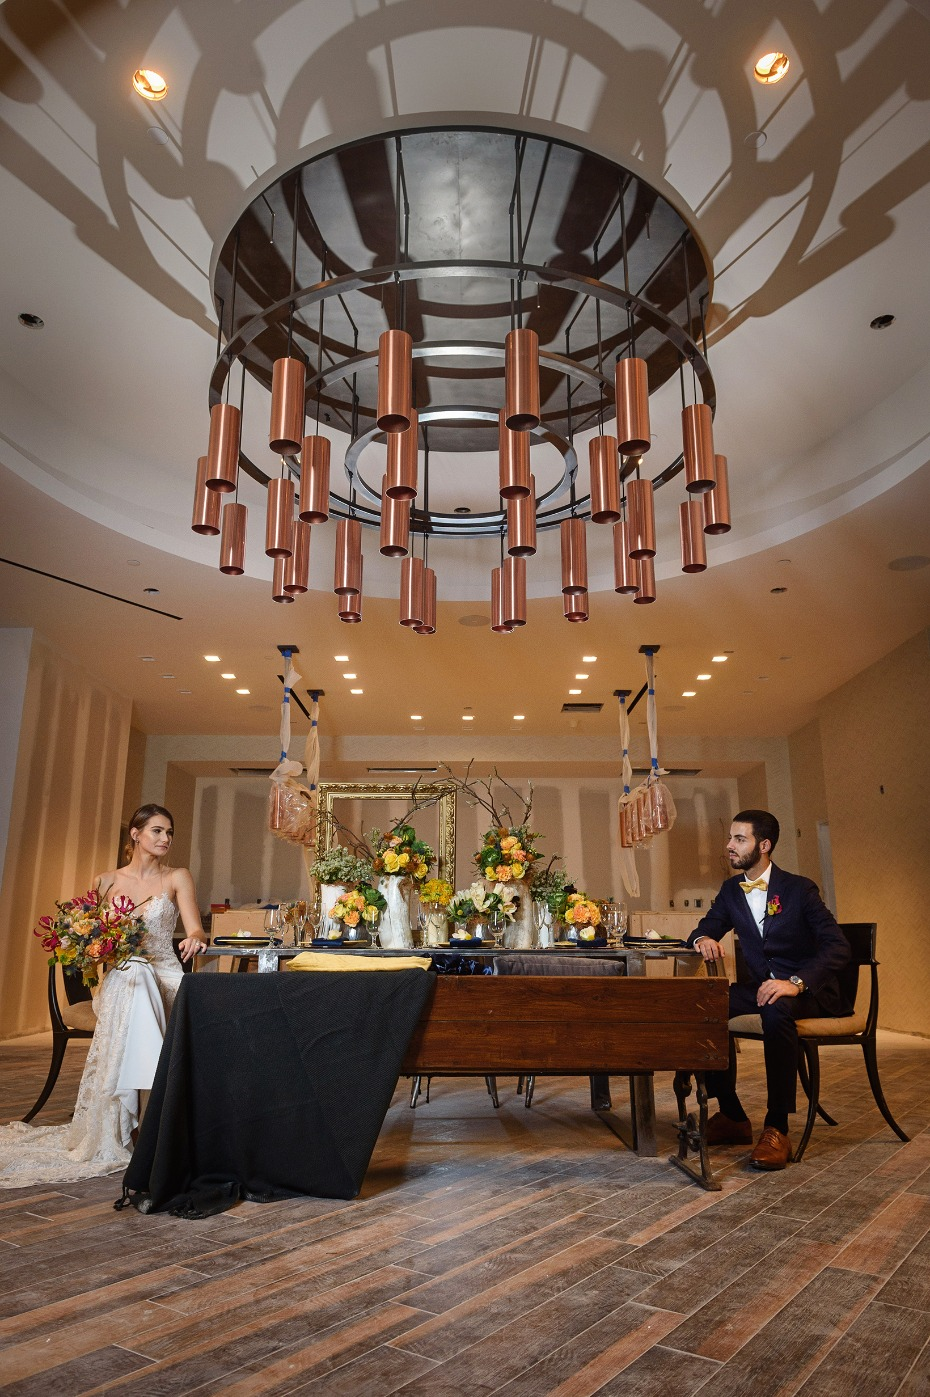 The Art Ovation Hotel is your wedding hotspot